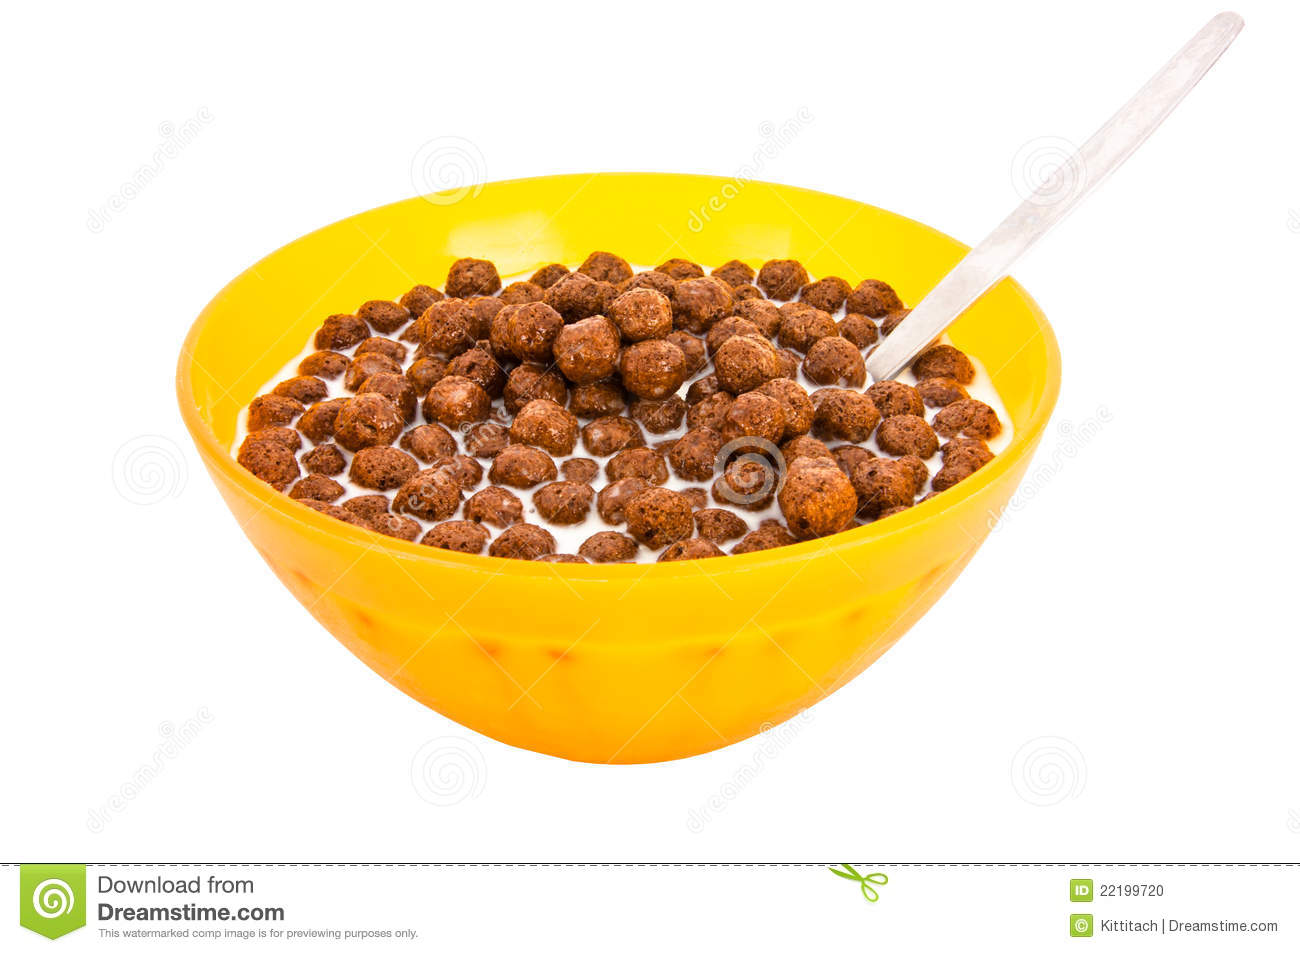 Chocolate Cereal Stock Photo - Image: 22199720